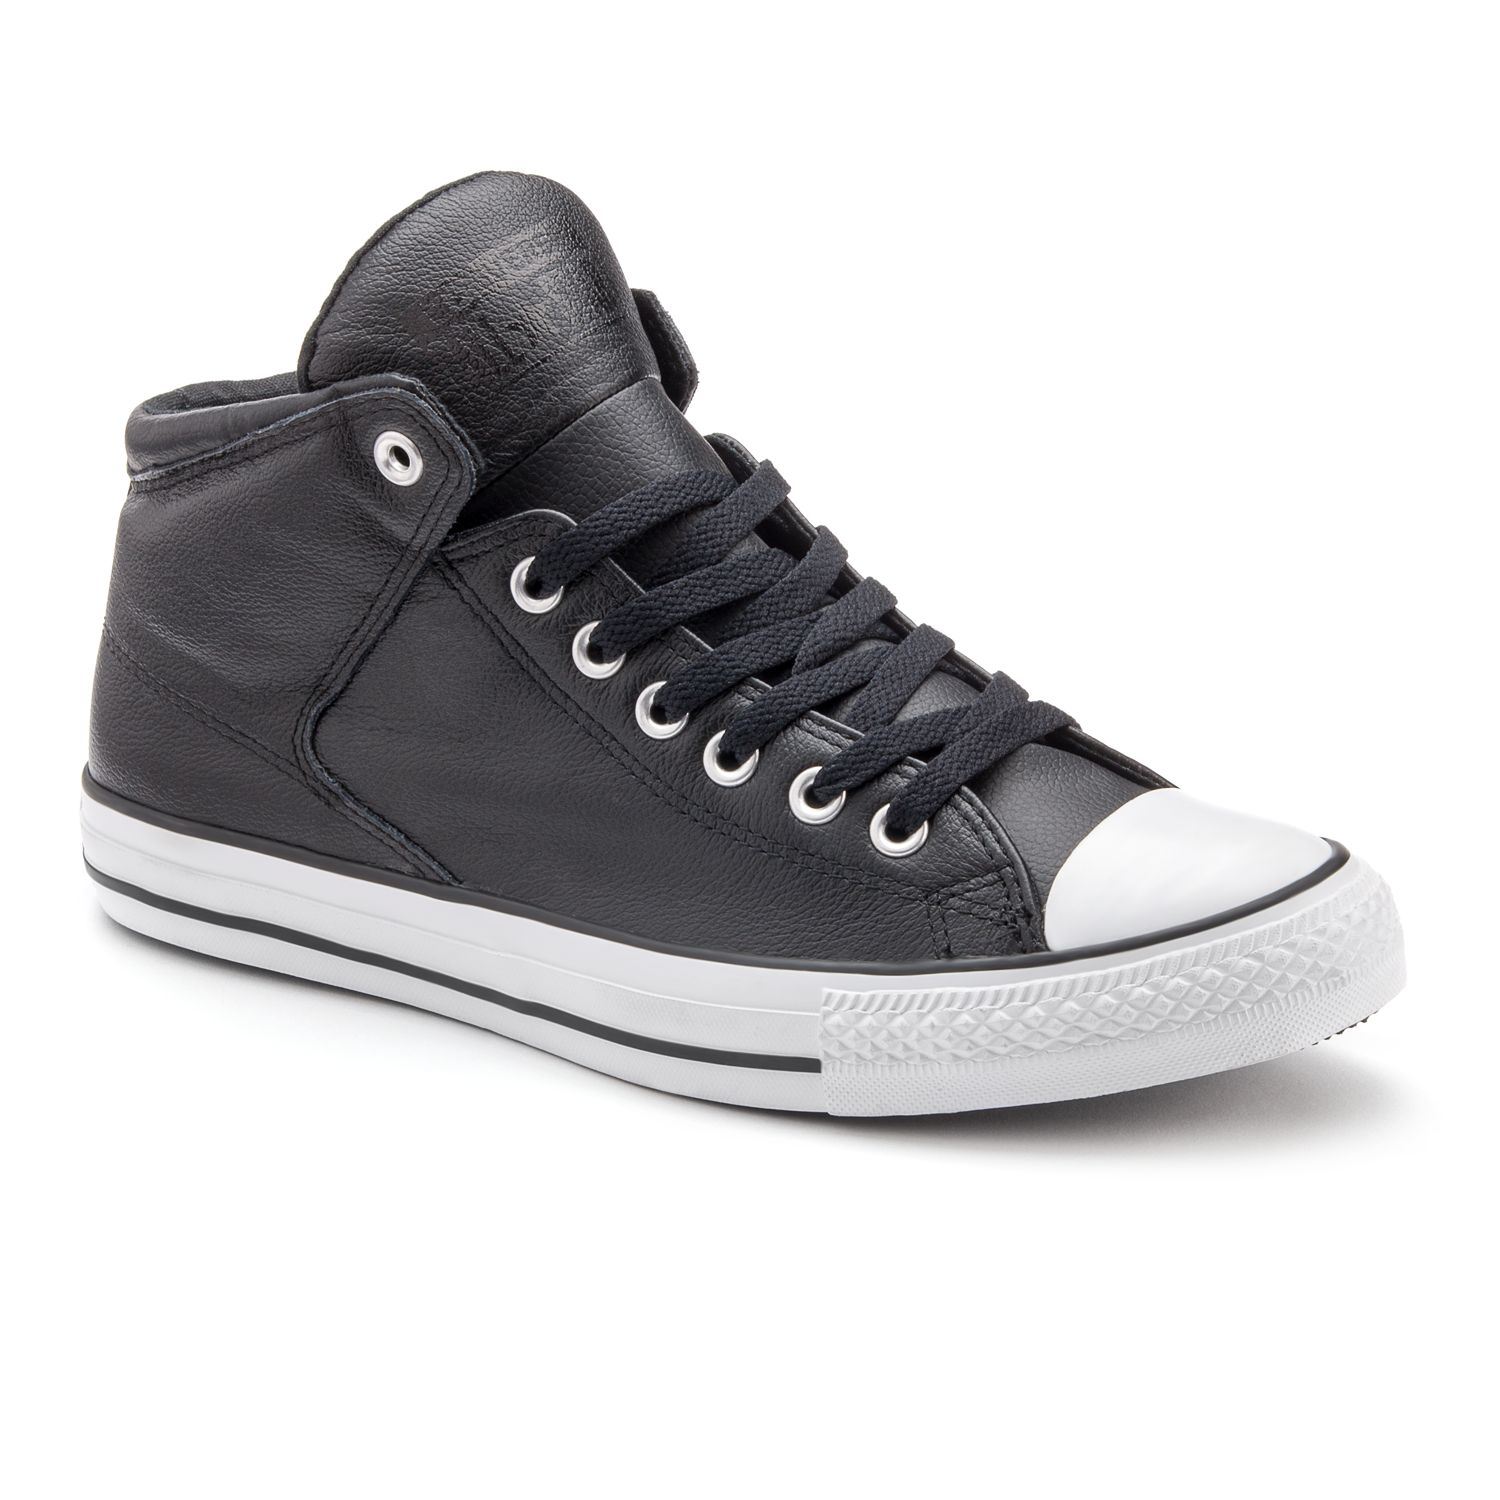 Adult Converse All Star High Street Sneakers. FOR PRICE ...